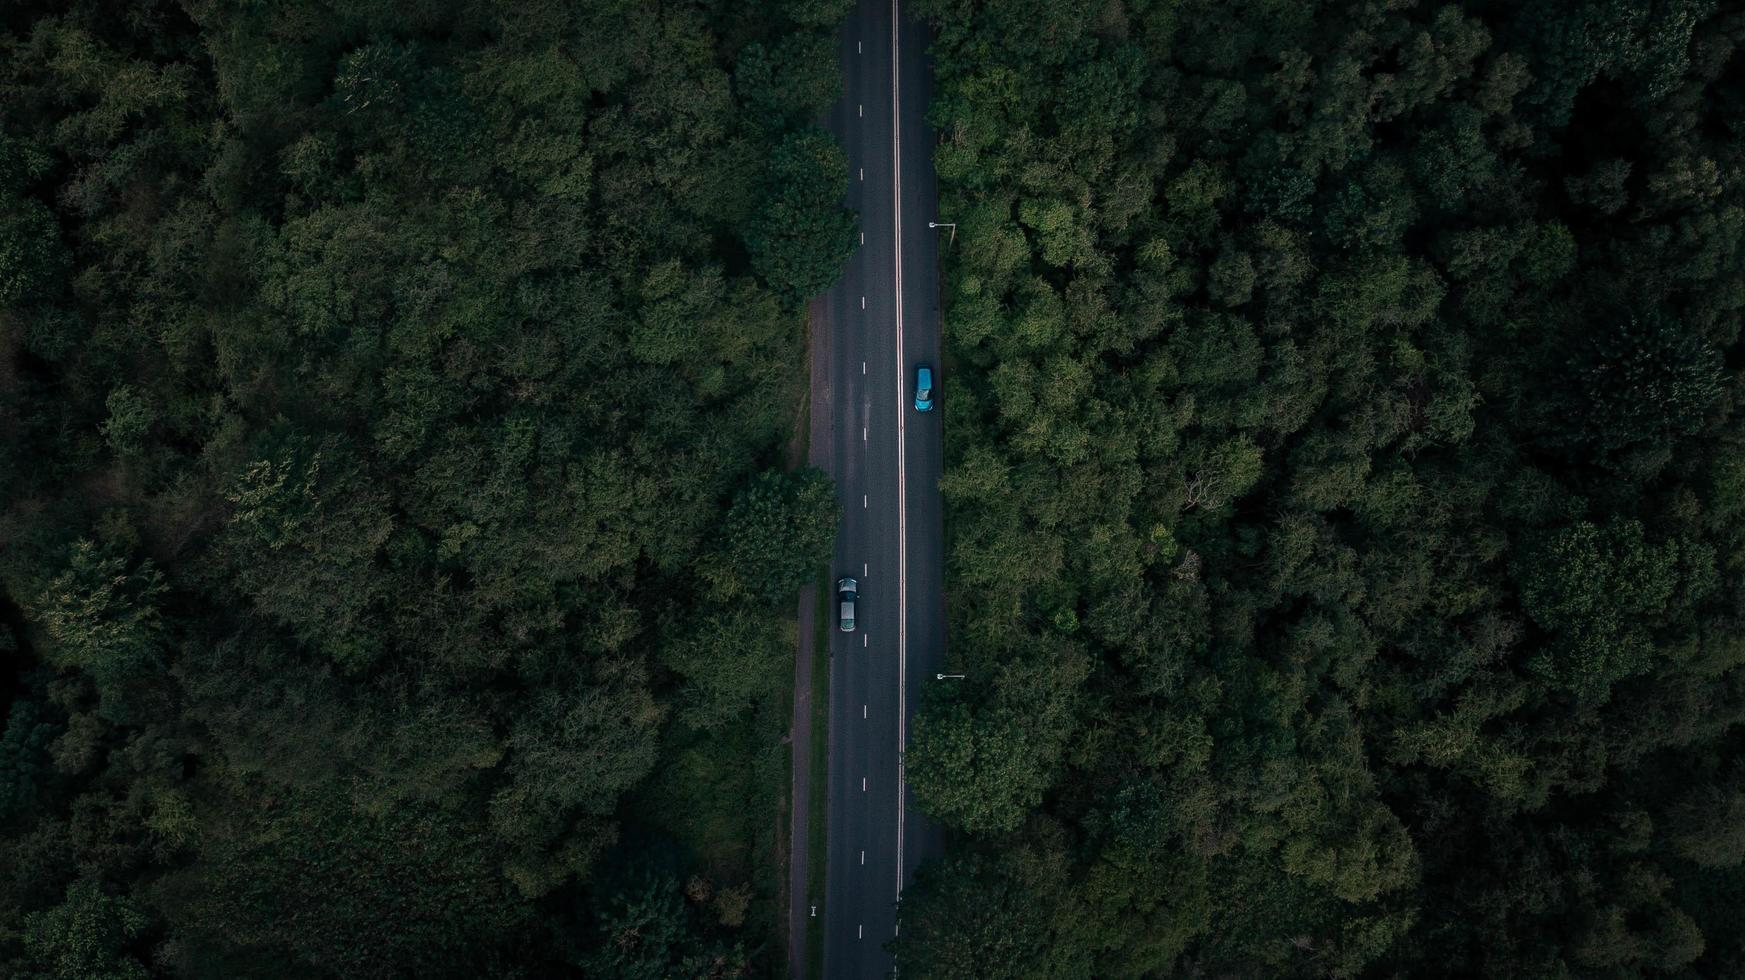 Aerial view of road surrounded by trees photo